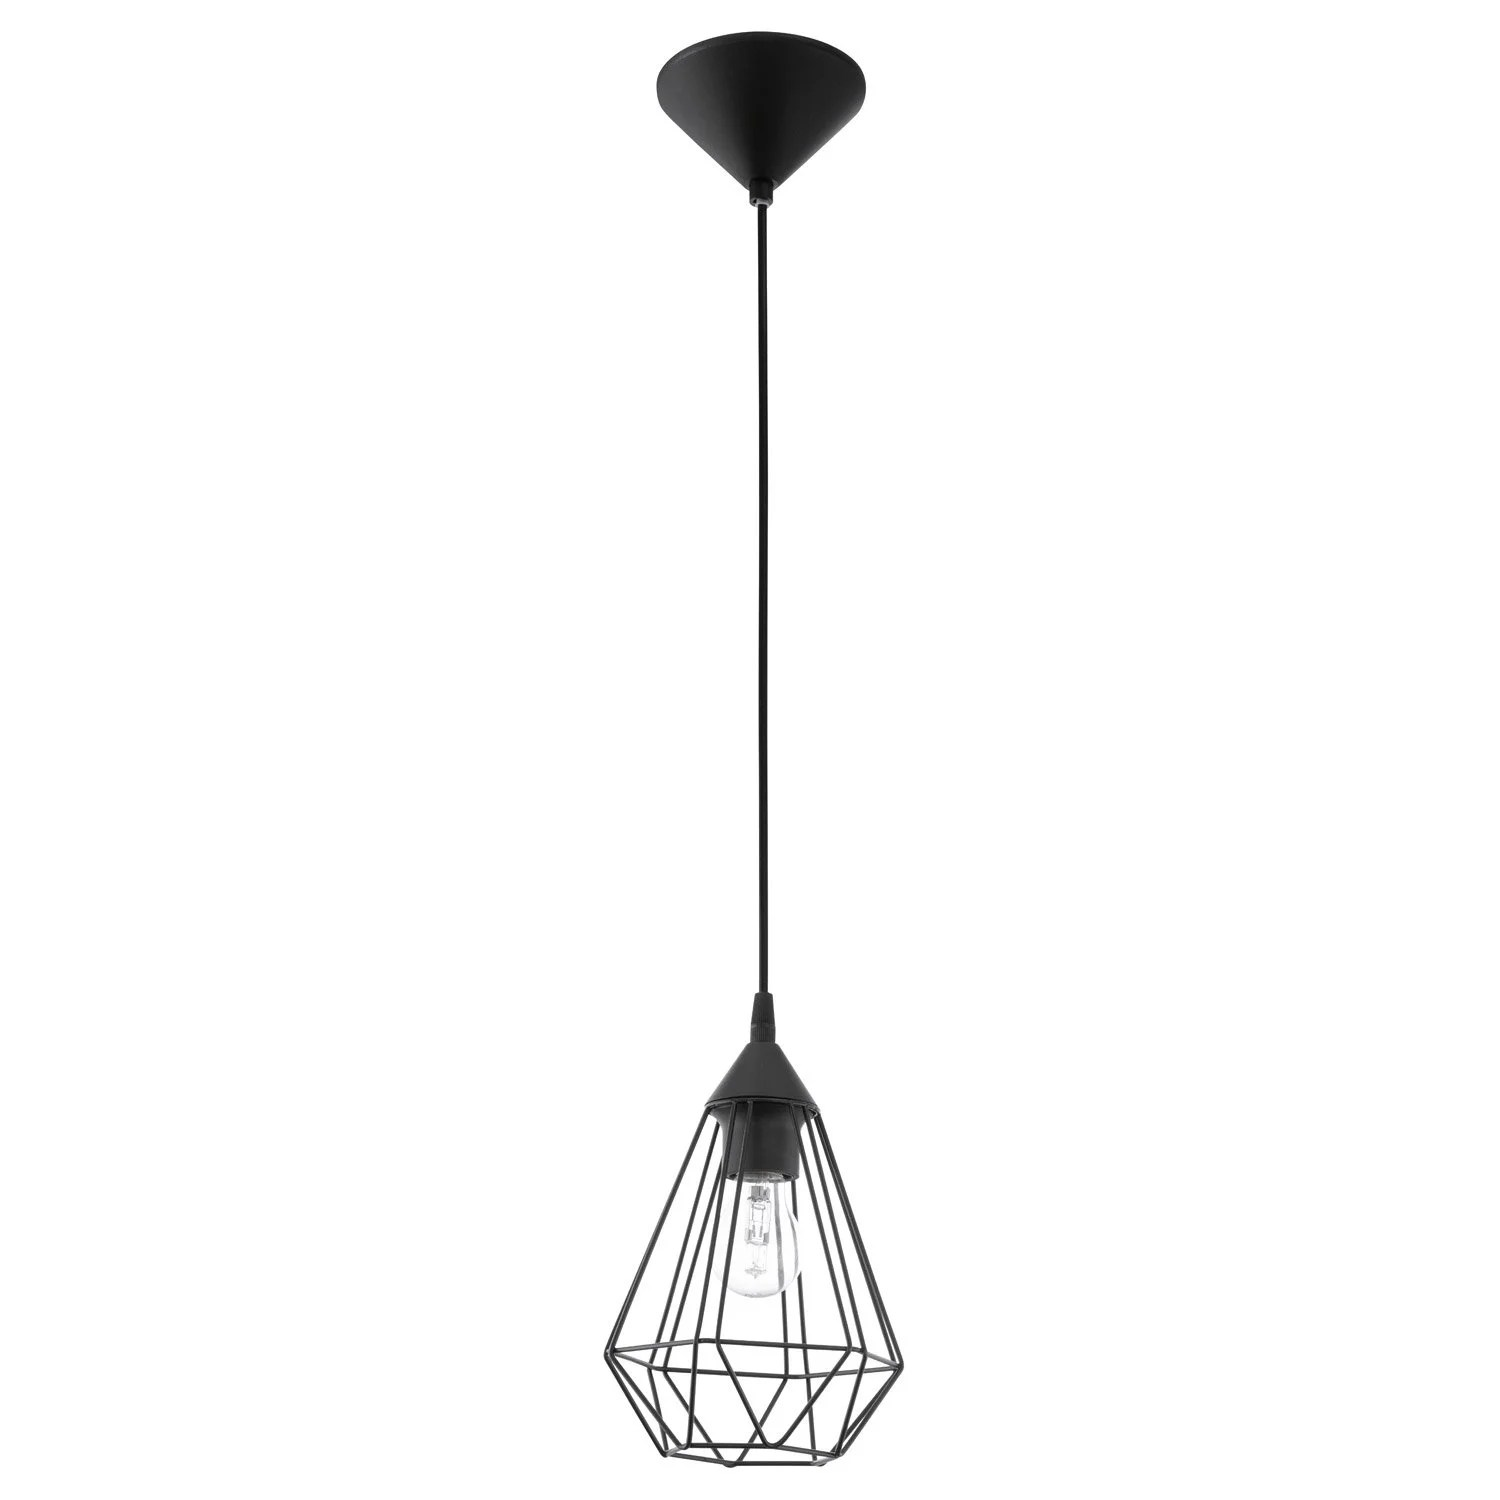 Suspension Noir Metal Suspension E27 Style Industriel Tarbes Métal Noir 1 X 60 W Eglo